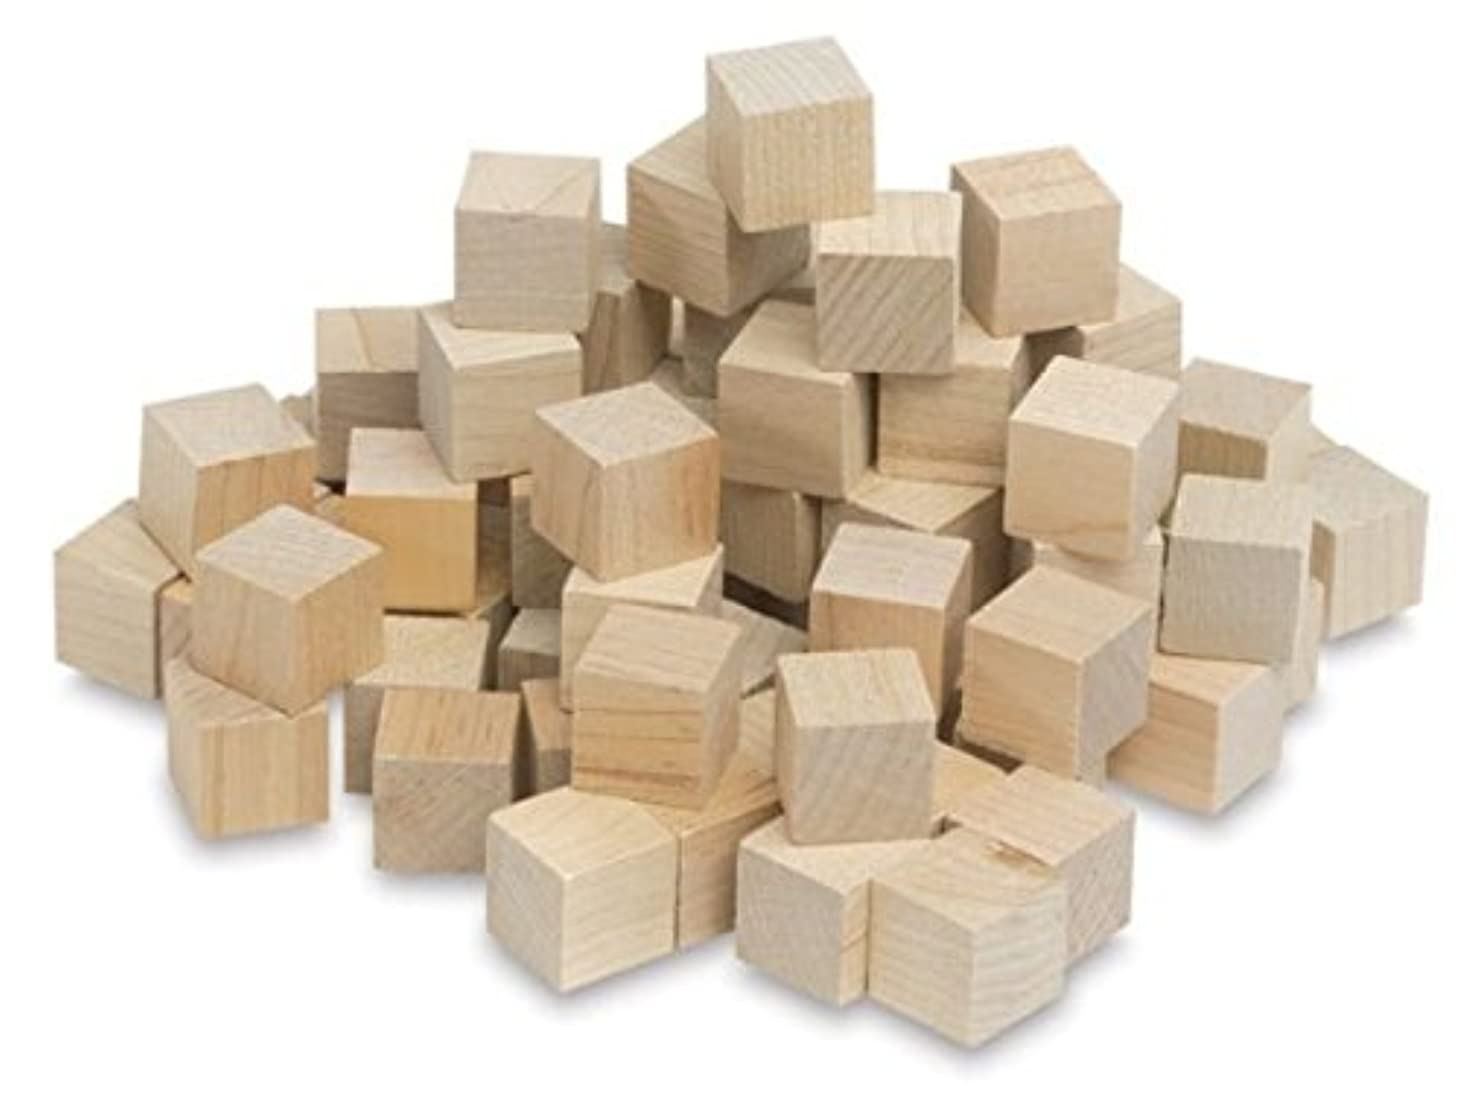 Hygloss Products Unfinished Wood Blocks - Blank Wooden Building Block Cubes – 3/4 Inches, 72 Pack